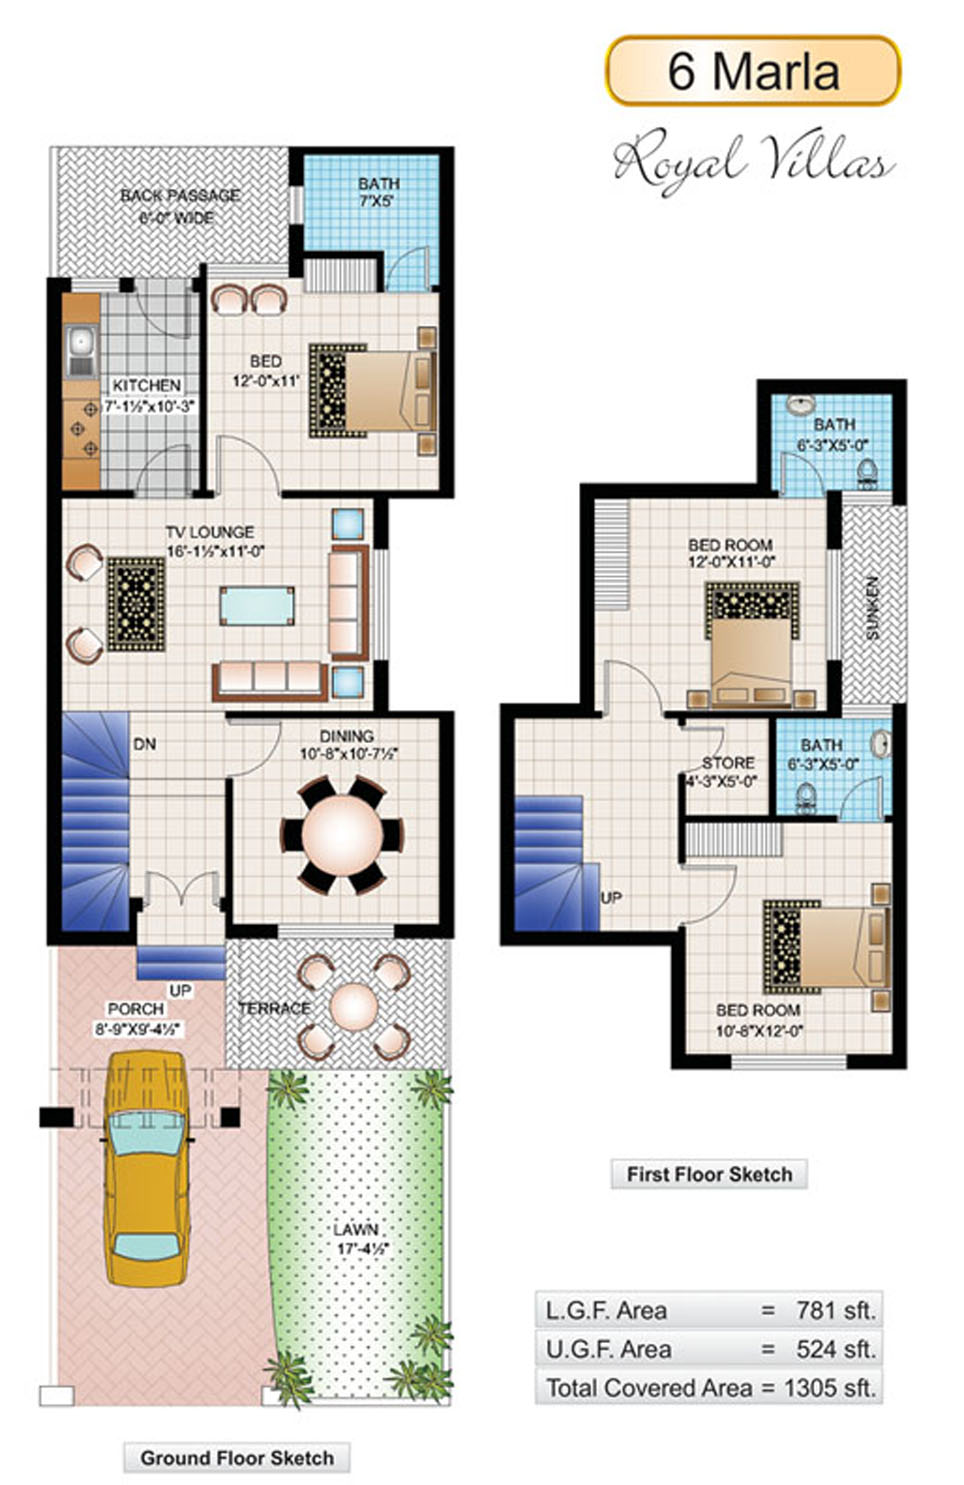 6 marla house plans civil engineers pk for House floor plans with pictures